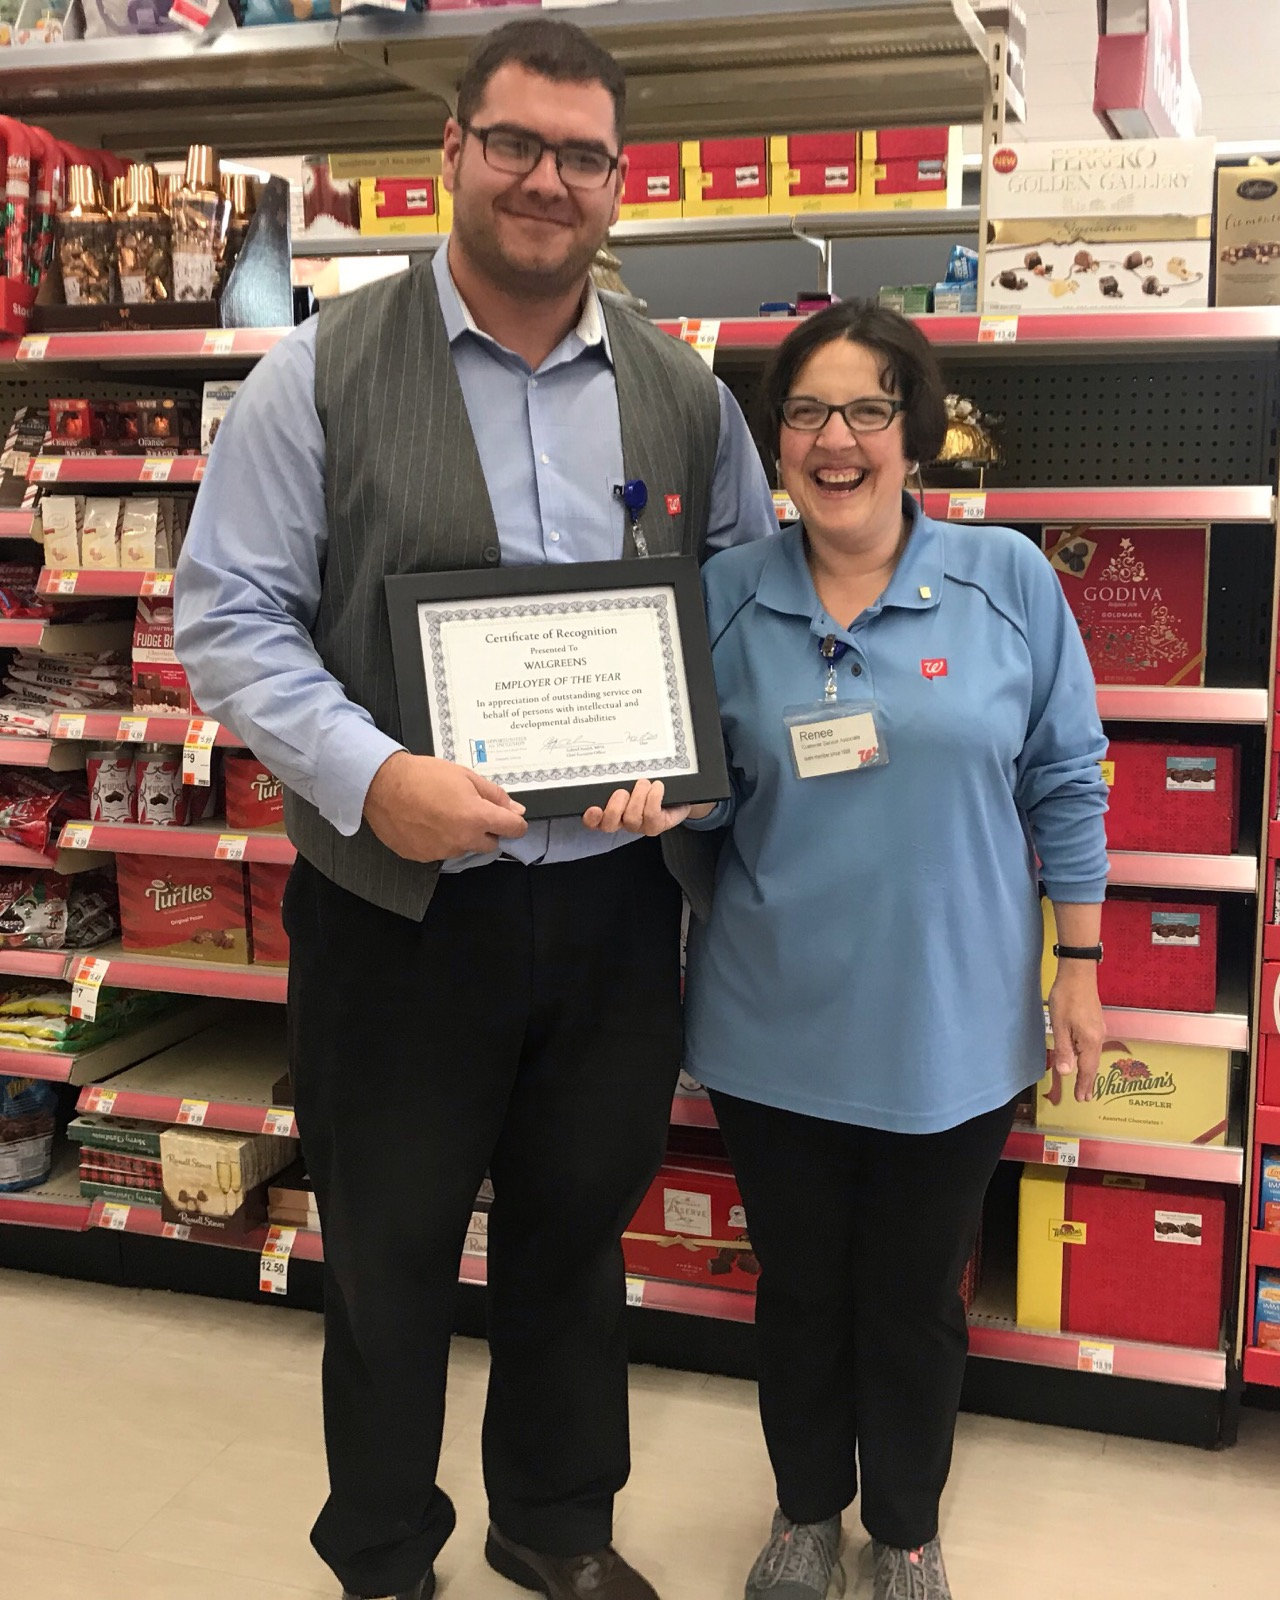 Renee_and_Walgreens_manager_11-21-19.JPG20200113135907